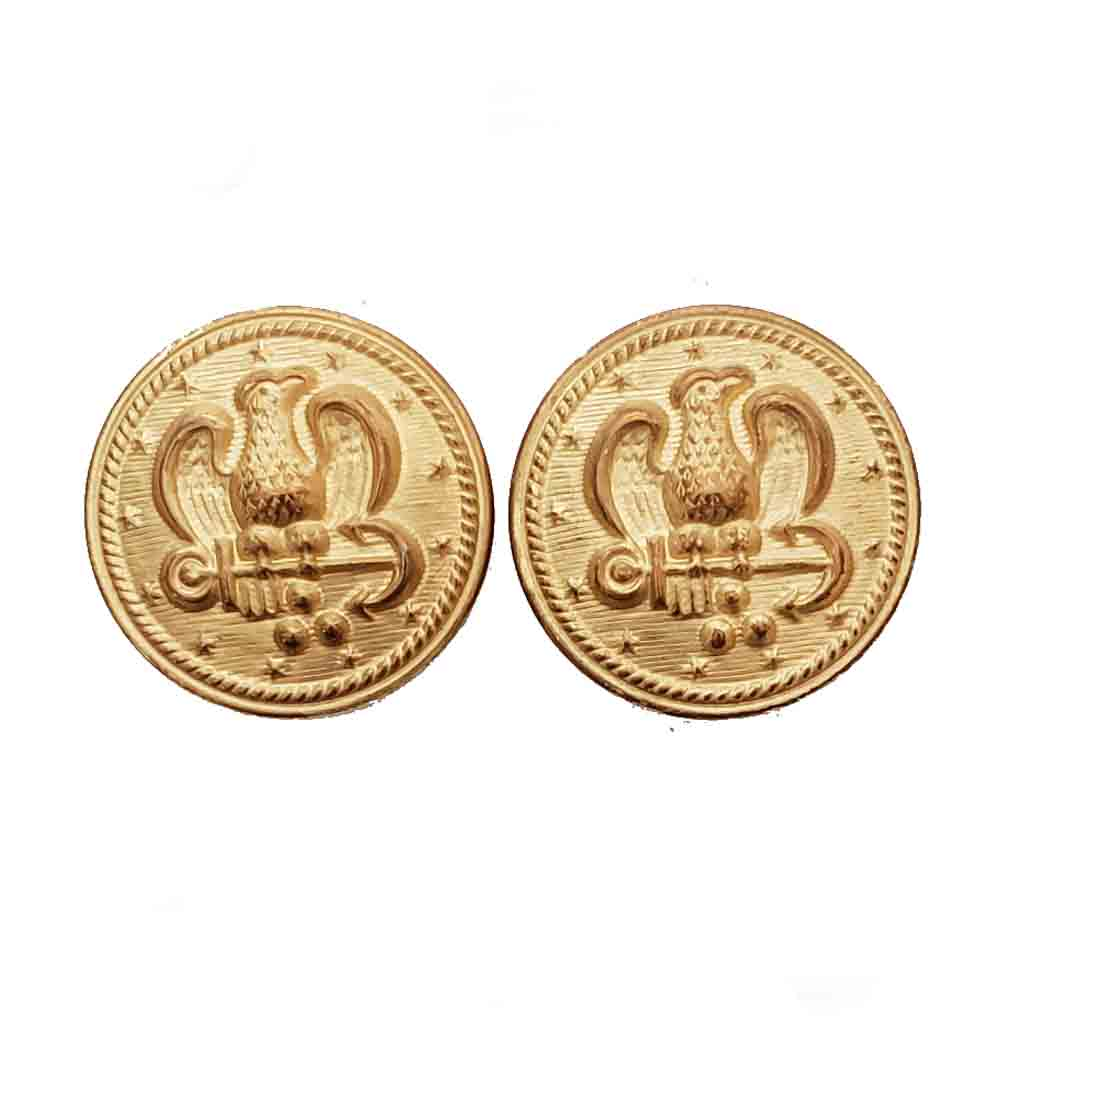 Two Vintage Waterbury Military Style Blazer Jacket Buttons Gold Brass Eagle Anchor Stars Patriotic Men's